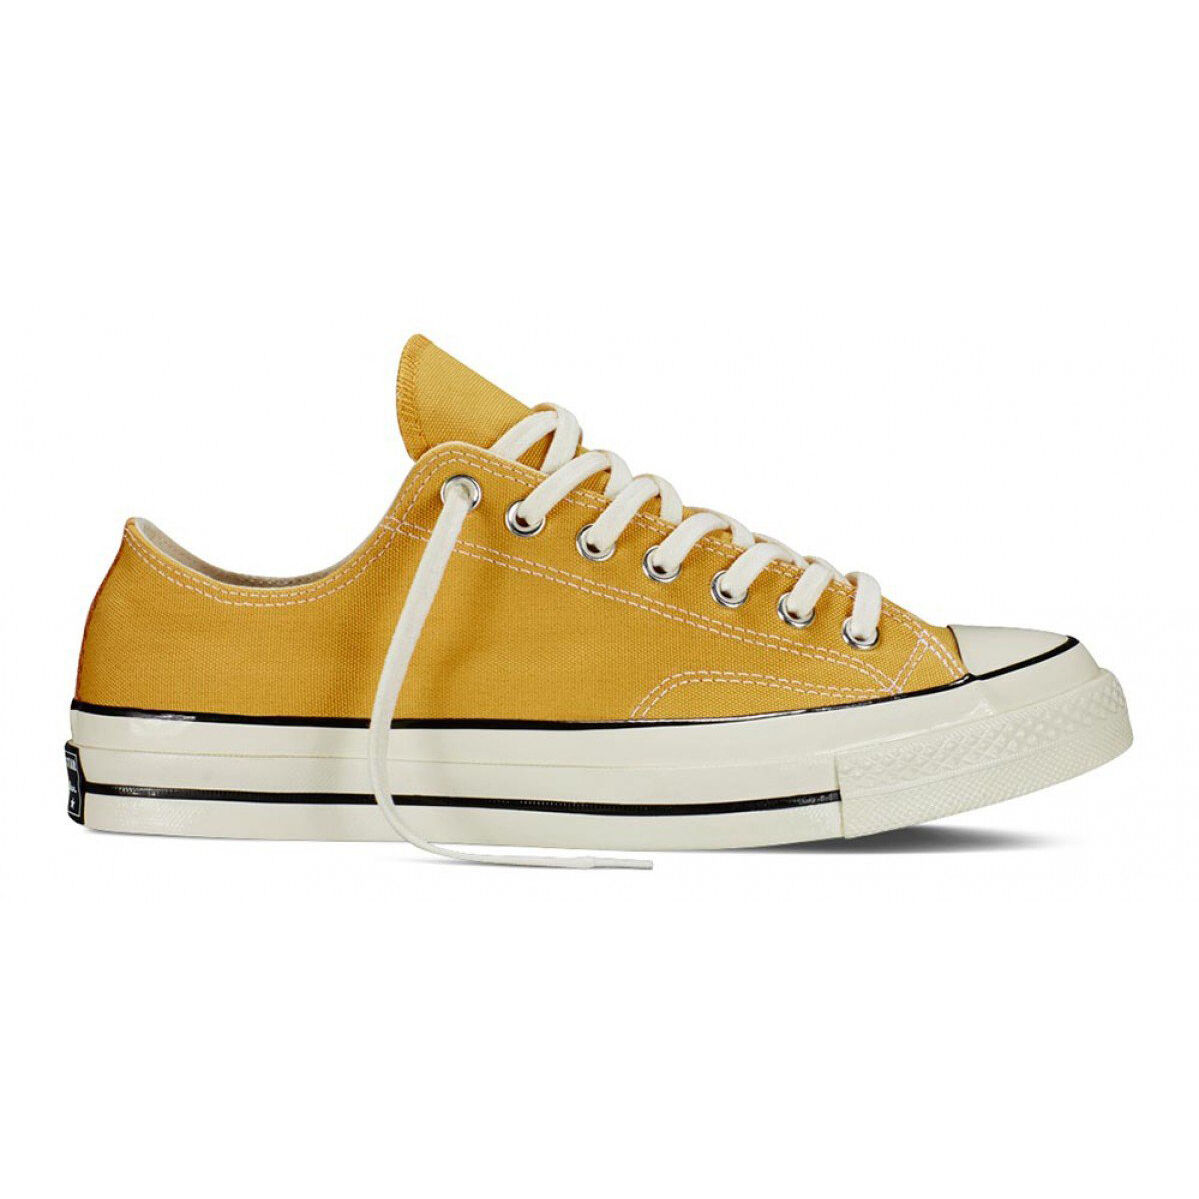 converse chuck taylor all star yellow